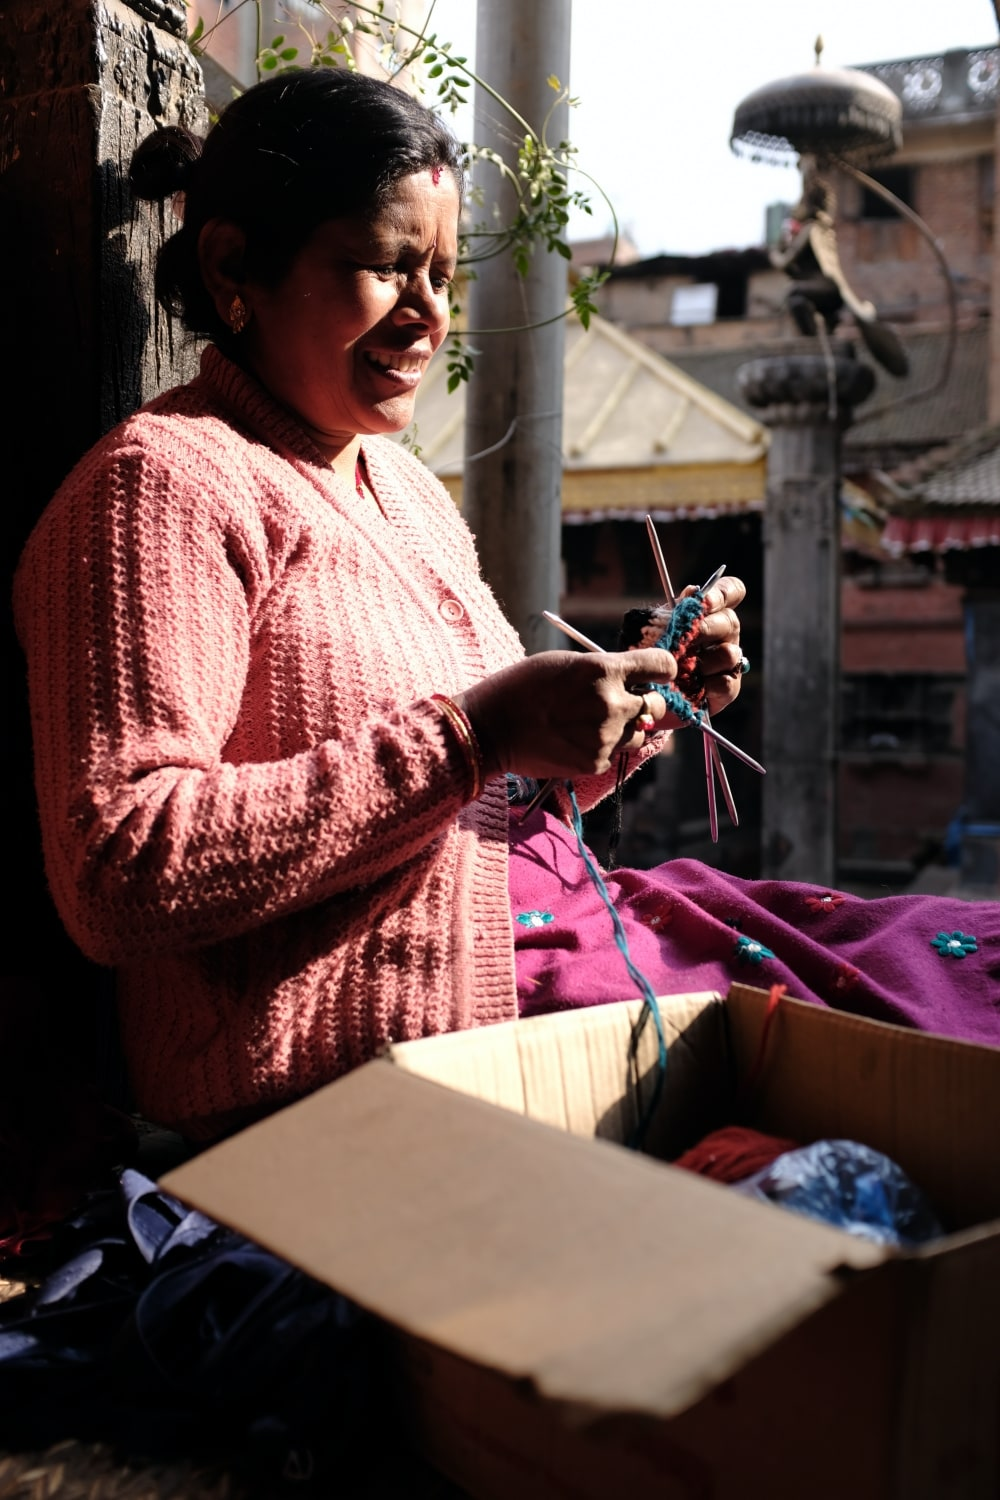 A woman knitting inside a temple complex in Bhaktapur